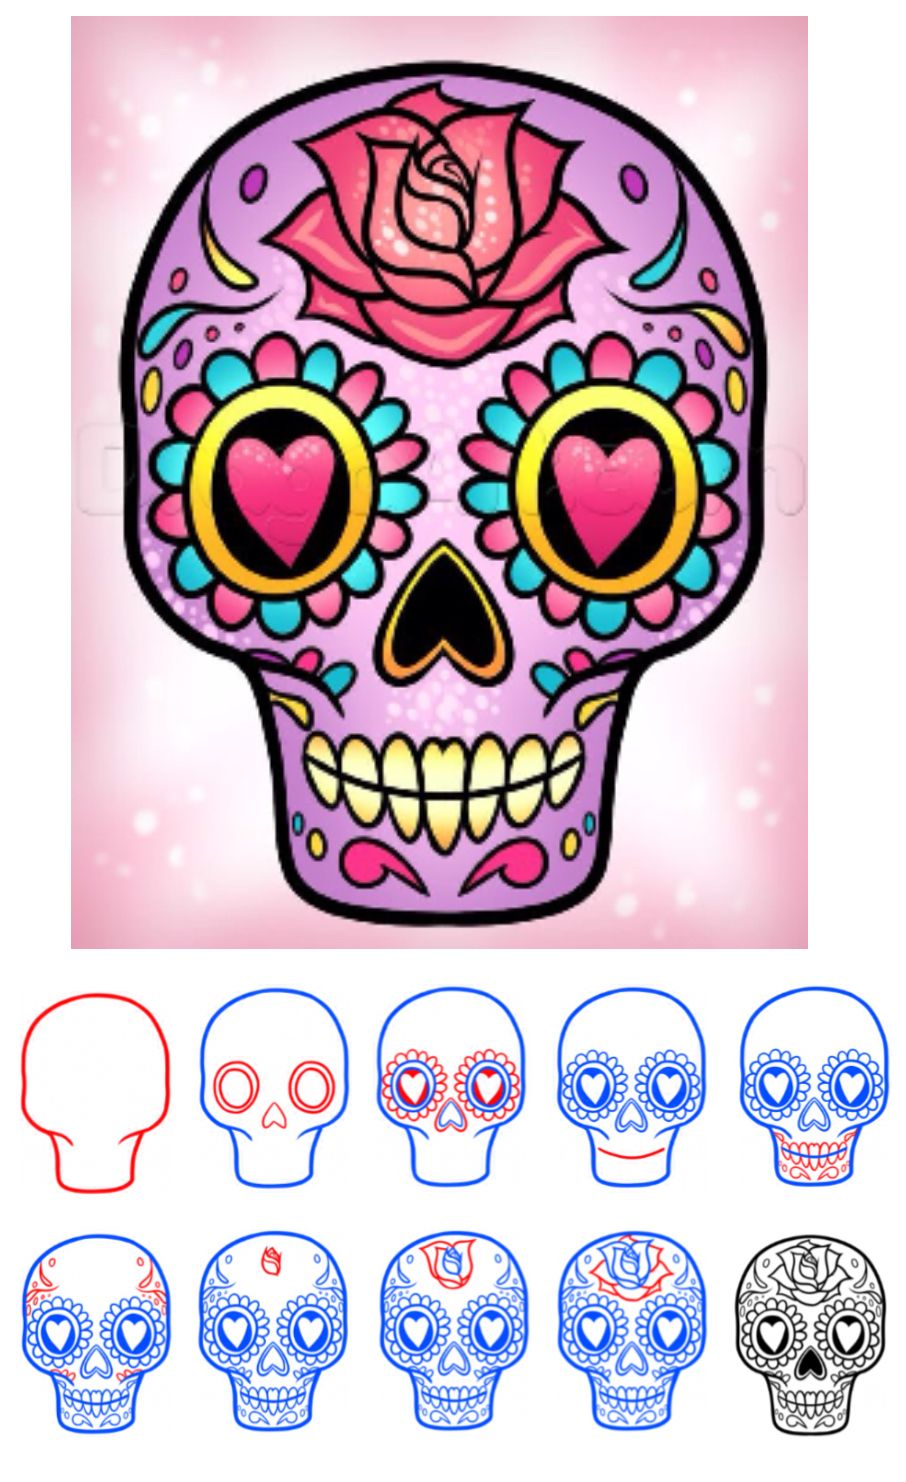 How to draw a sugar skull easyu via dragoart canvas